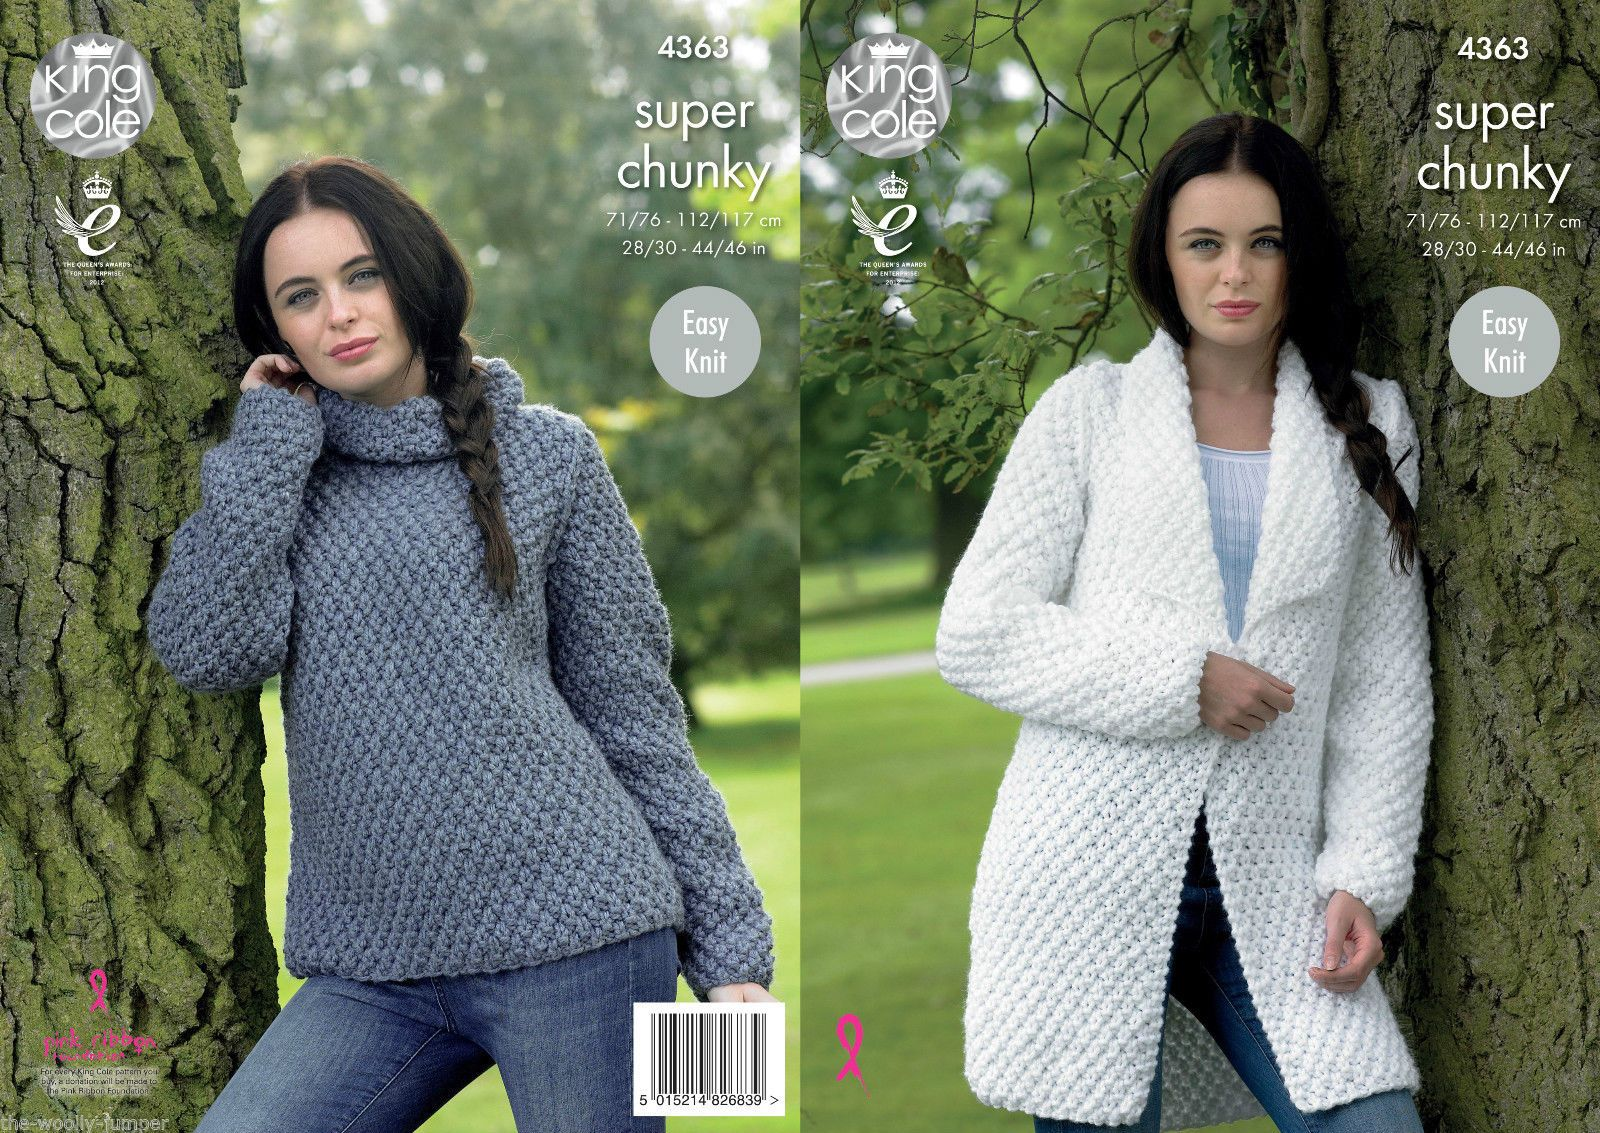 8eca4b792456 4363 - KING COLE BIG VALUE SUPER CHUNKY SWEATER CARDIGAN JACKET KNITTING  PATTERN - TO FIT CHEST 28 TO 46